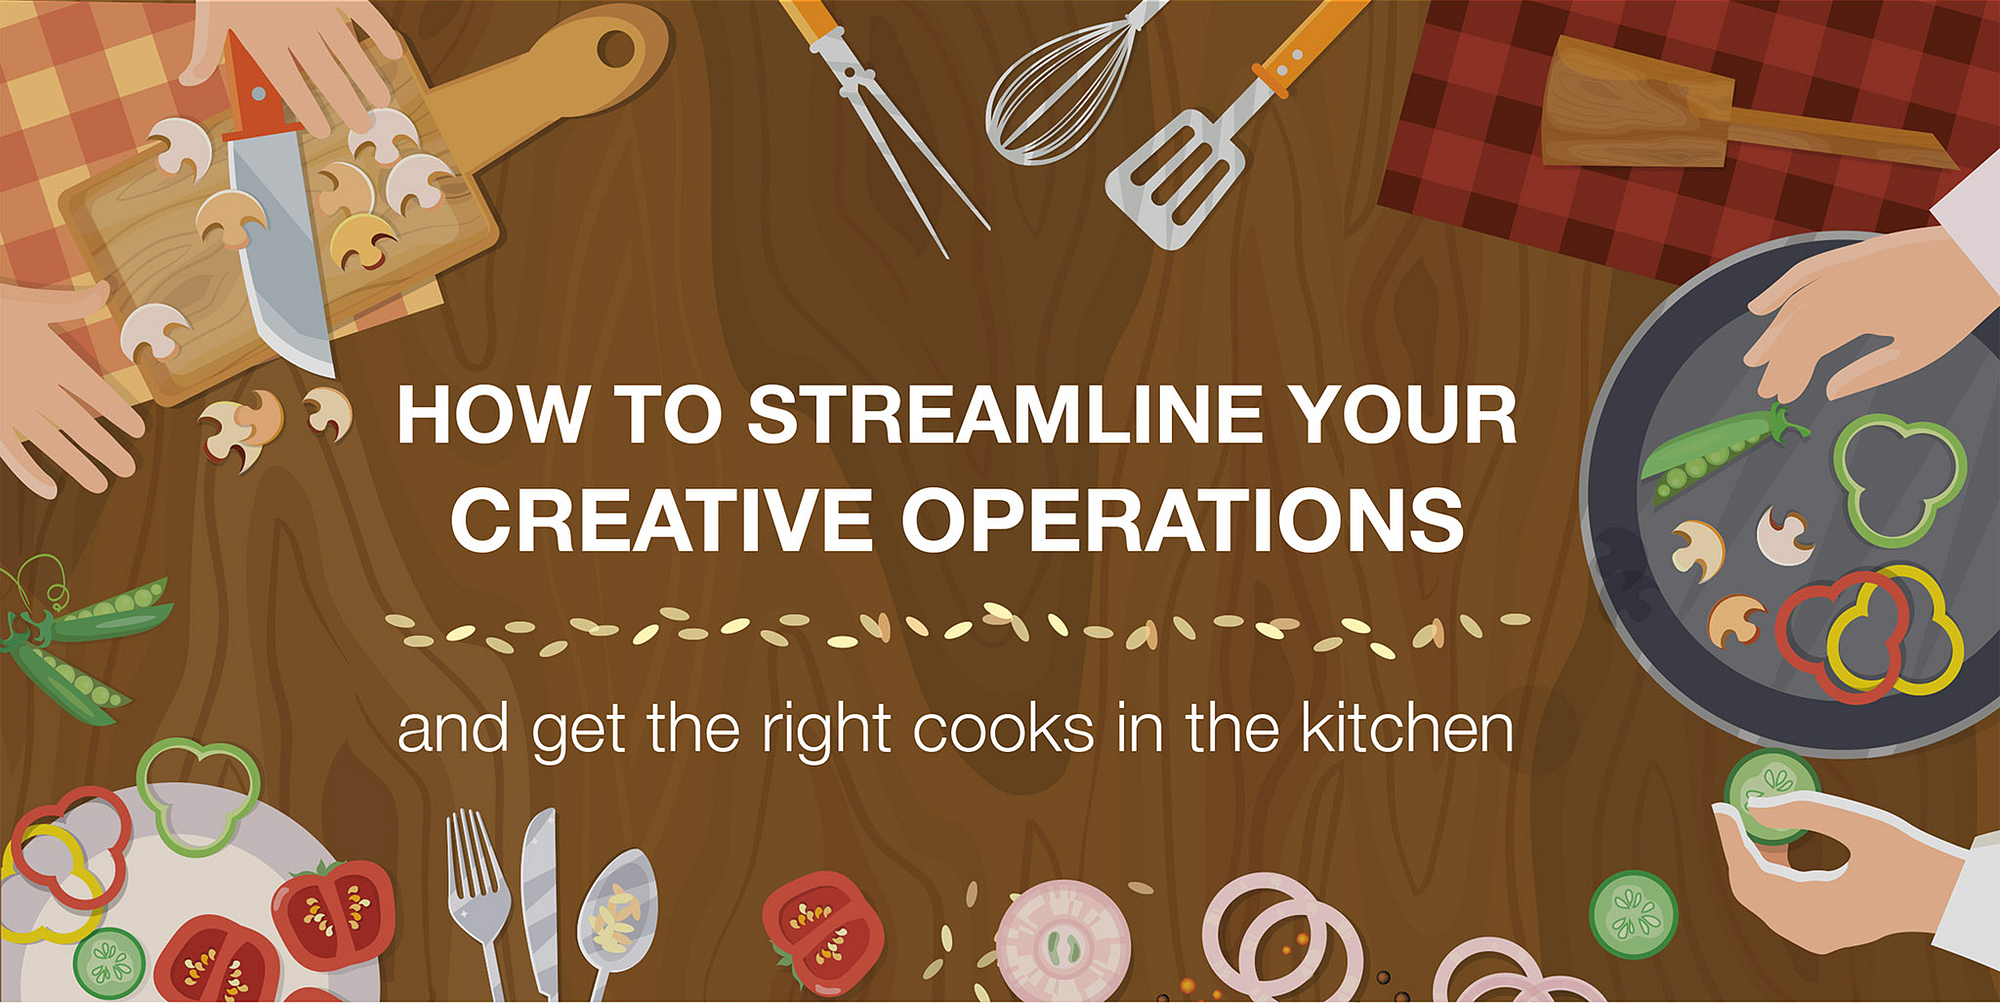 How to streamline your creative operations